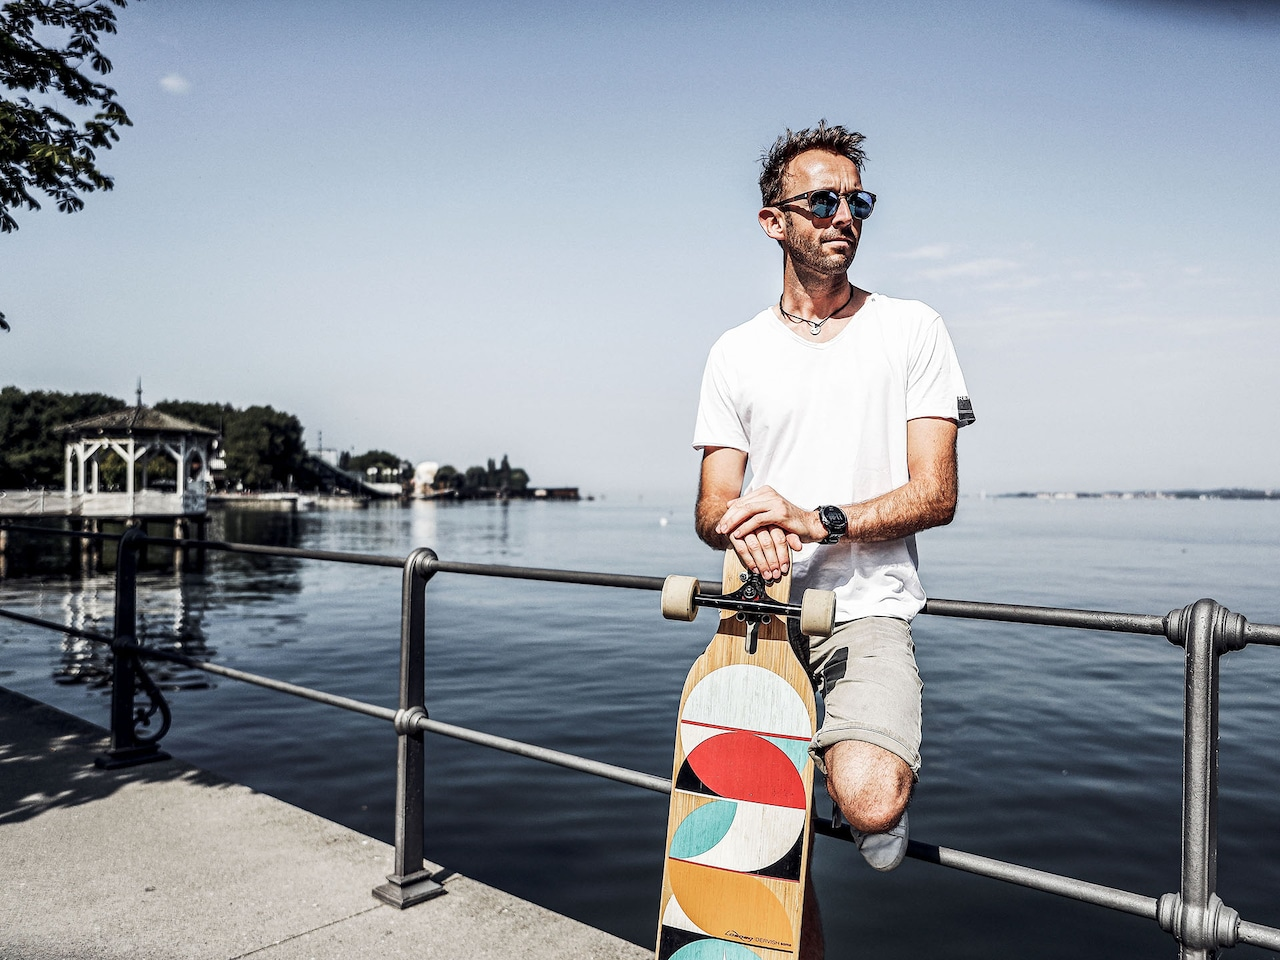 René Rast with skateboard